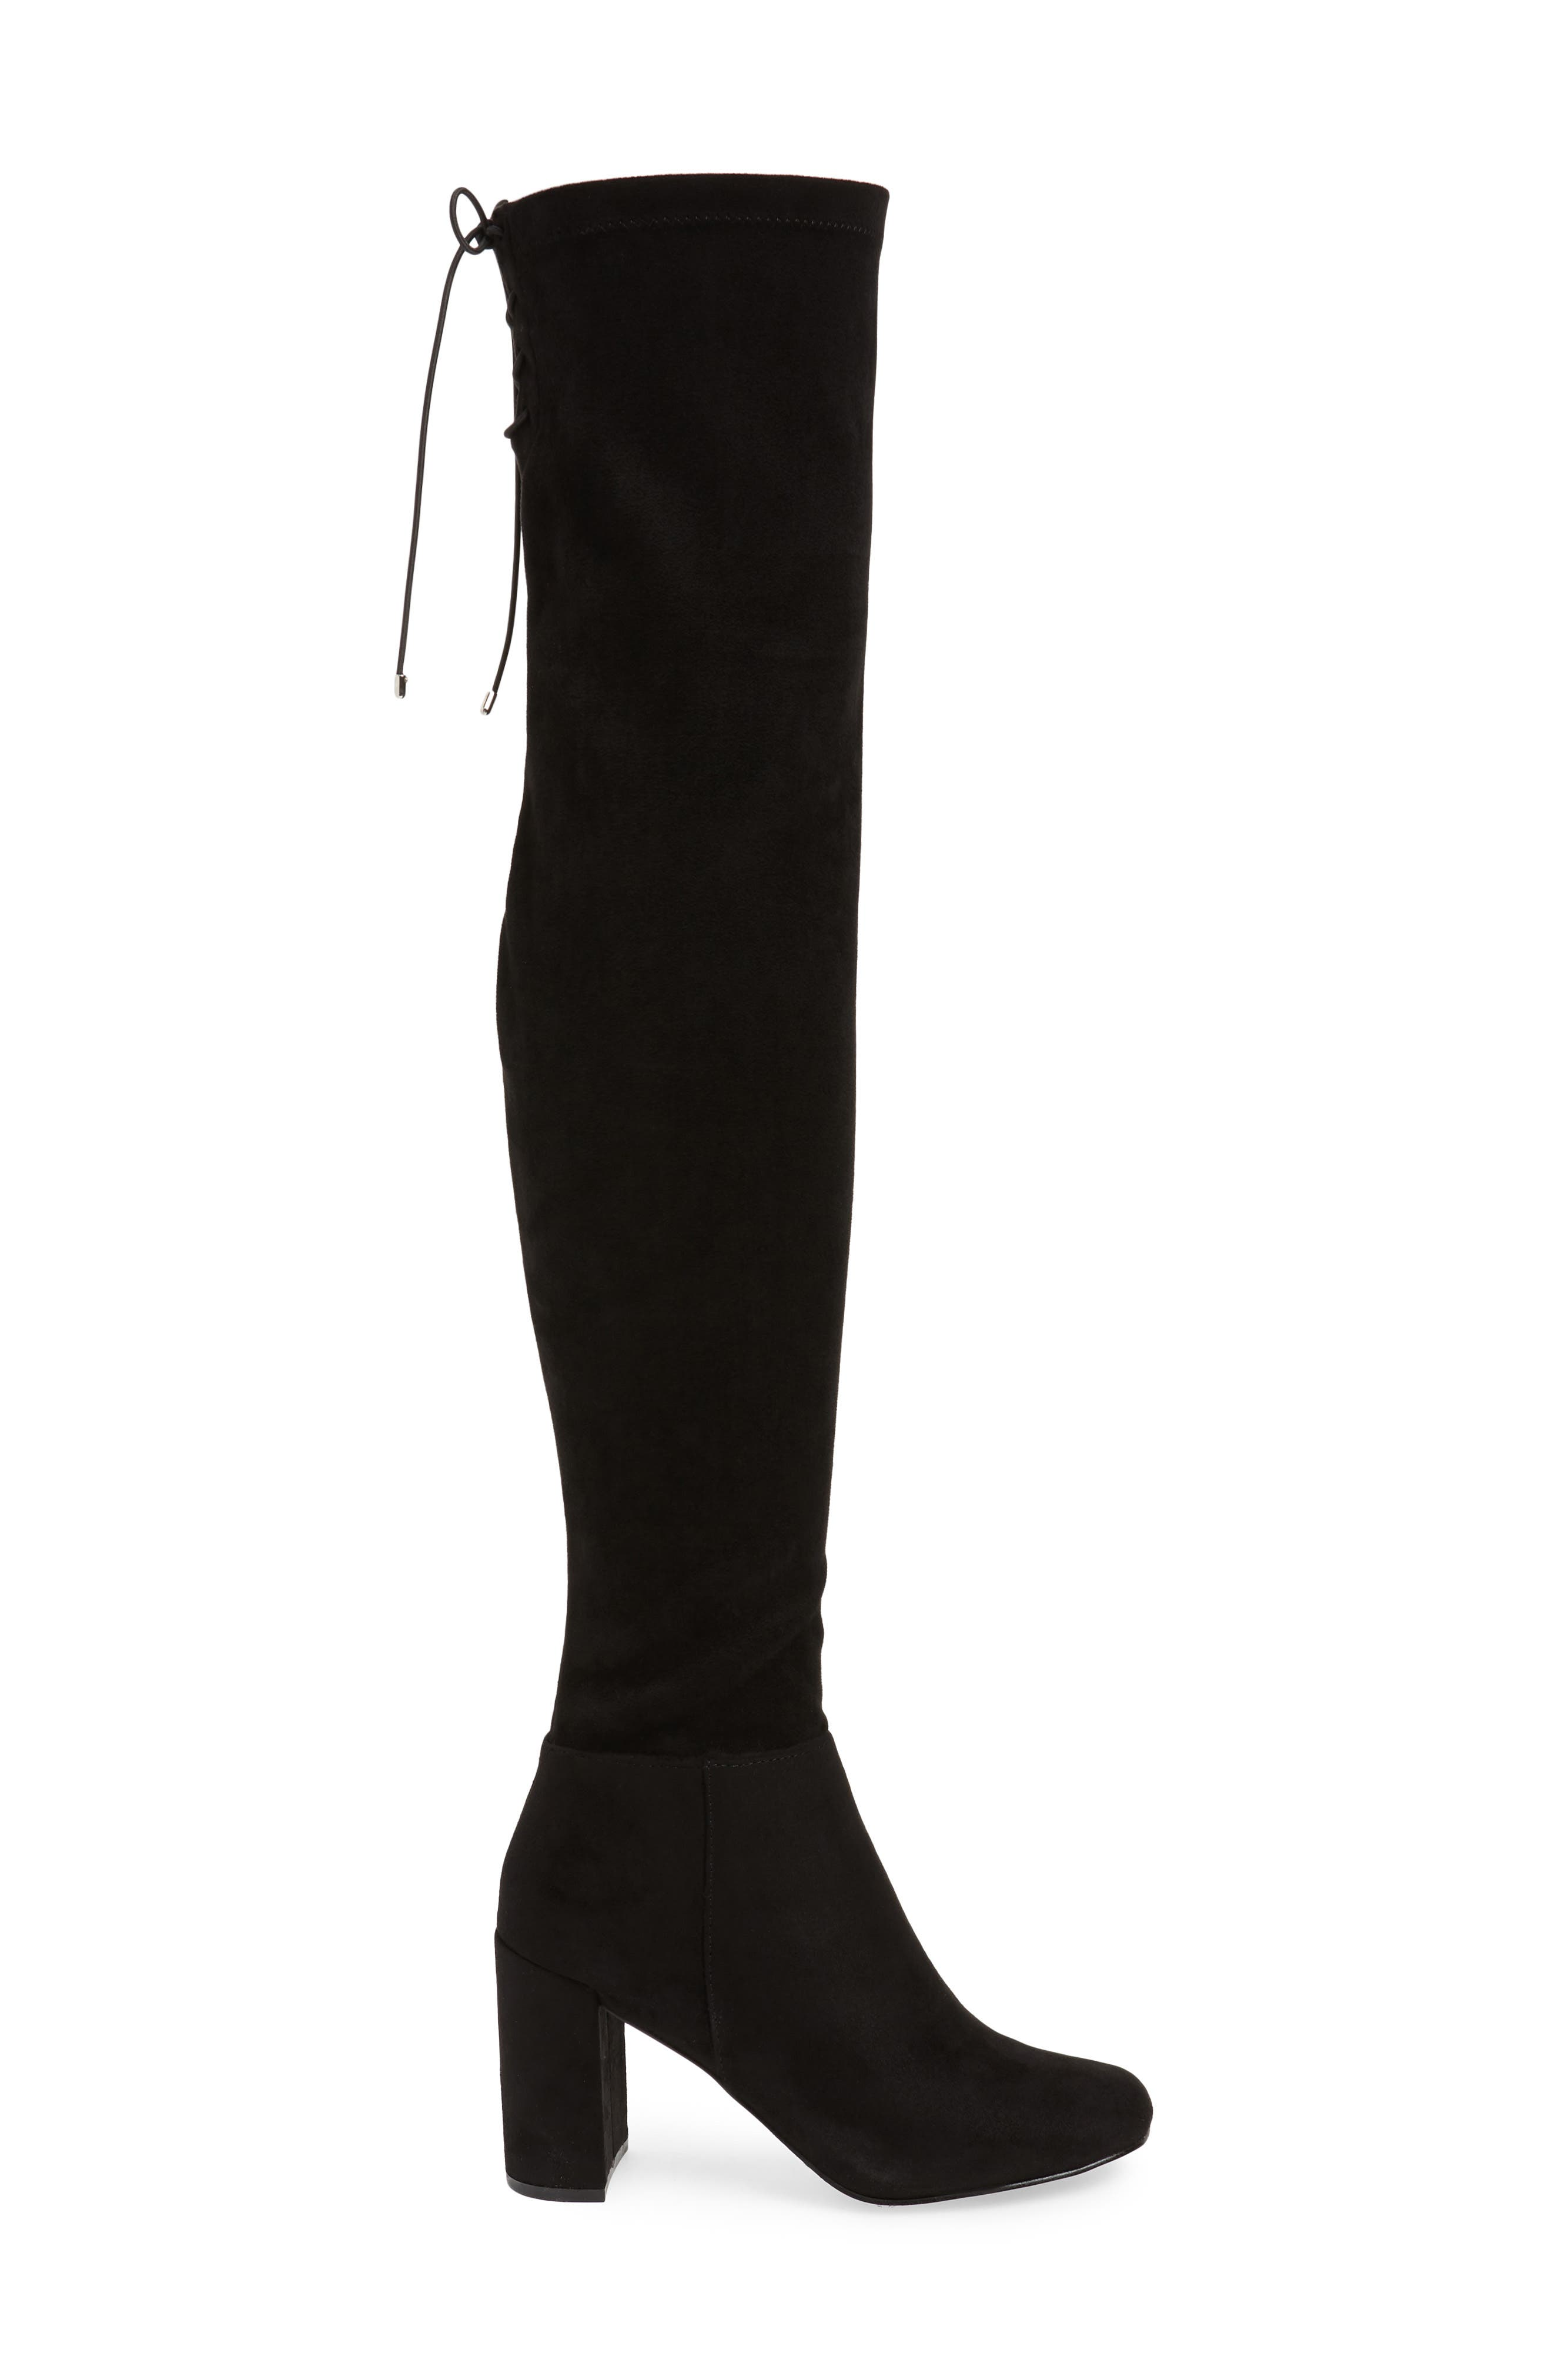 King Over the Knee Boot,                             Alternate thumbnail 3, color,                             BLACK